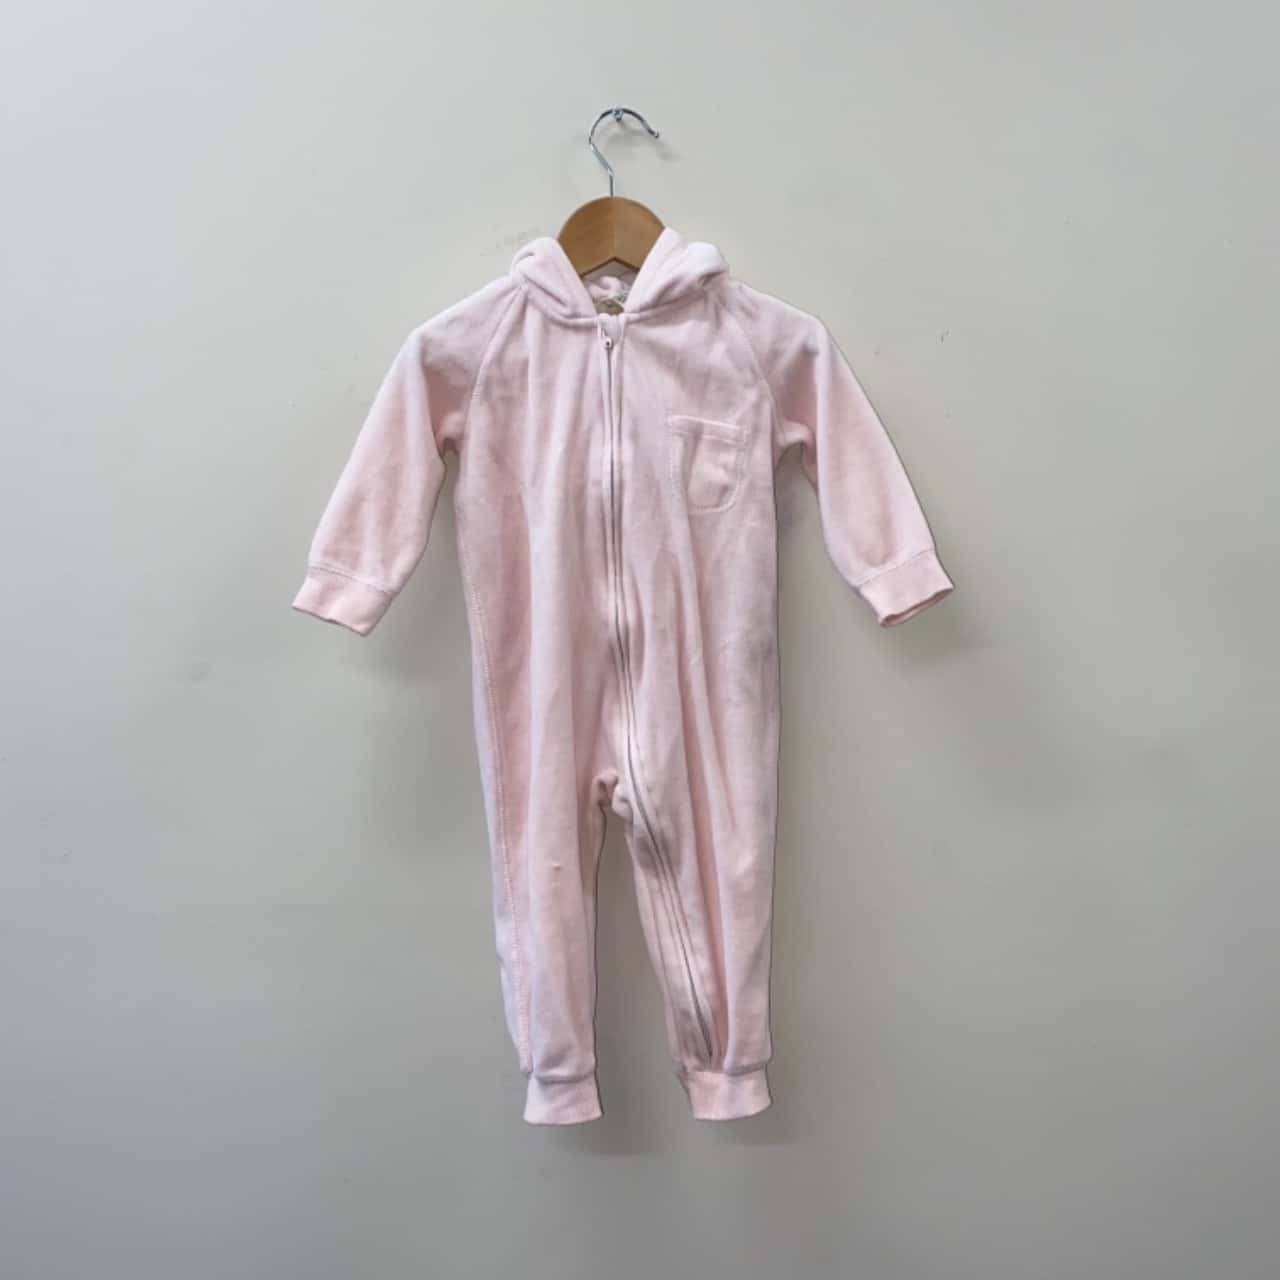 ** REDUCED LAST CHANCE ** Cotton On Baby Kids Size 1/12-18m Pink Onesie